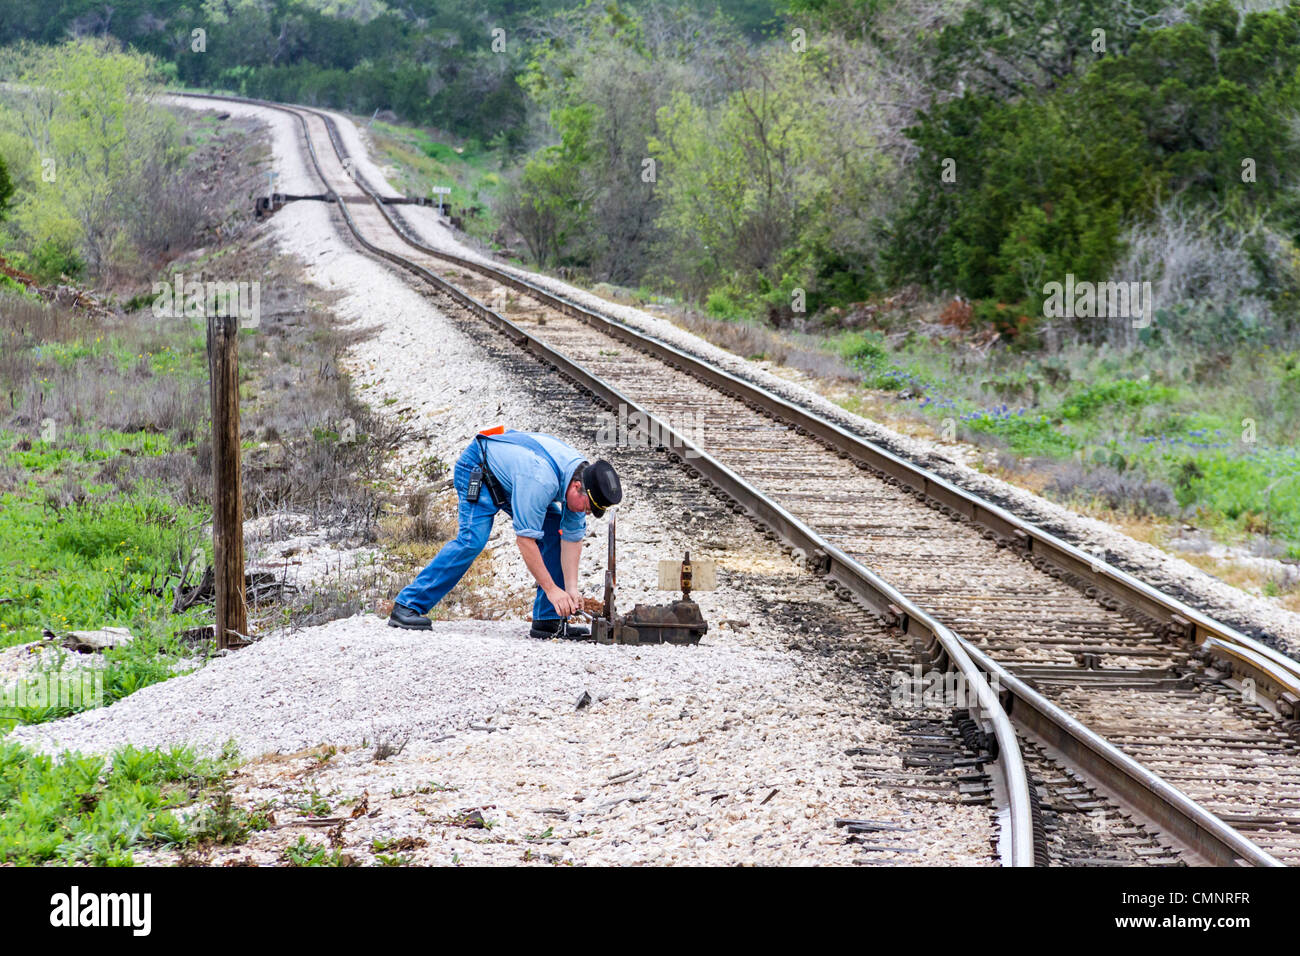 Brakeman walks ahead to operate switches to change tracks on Austin and Texas Central RR. - Stock Image